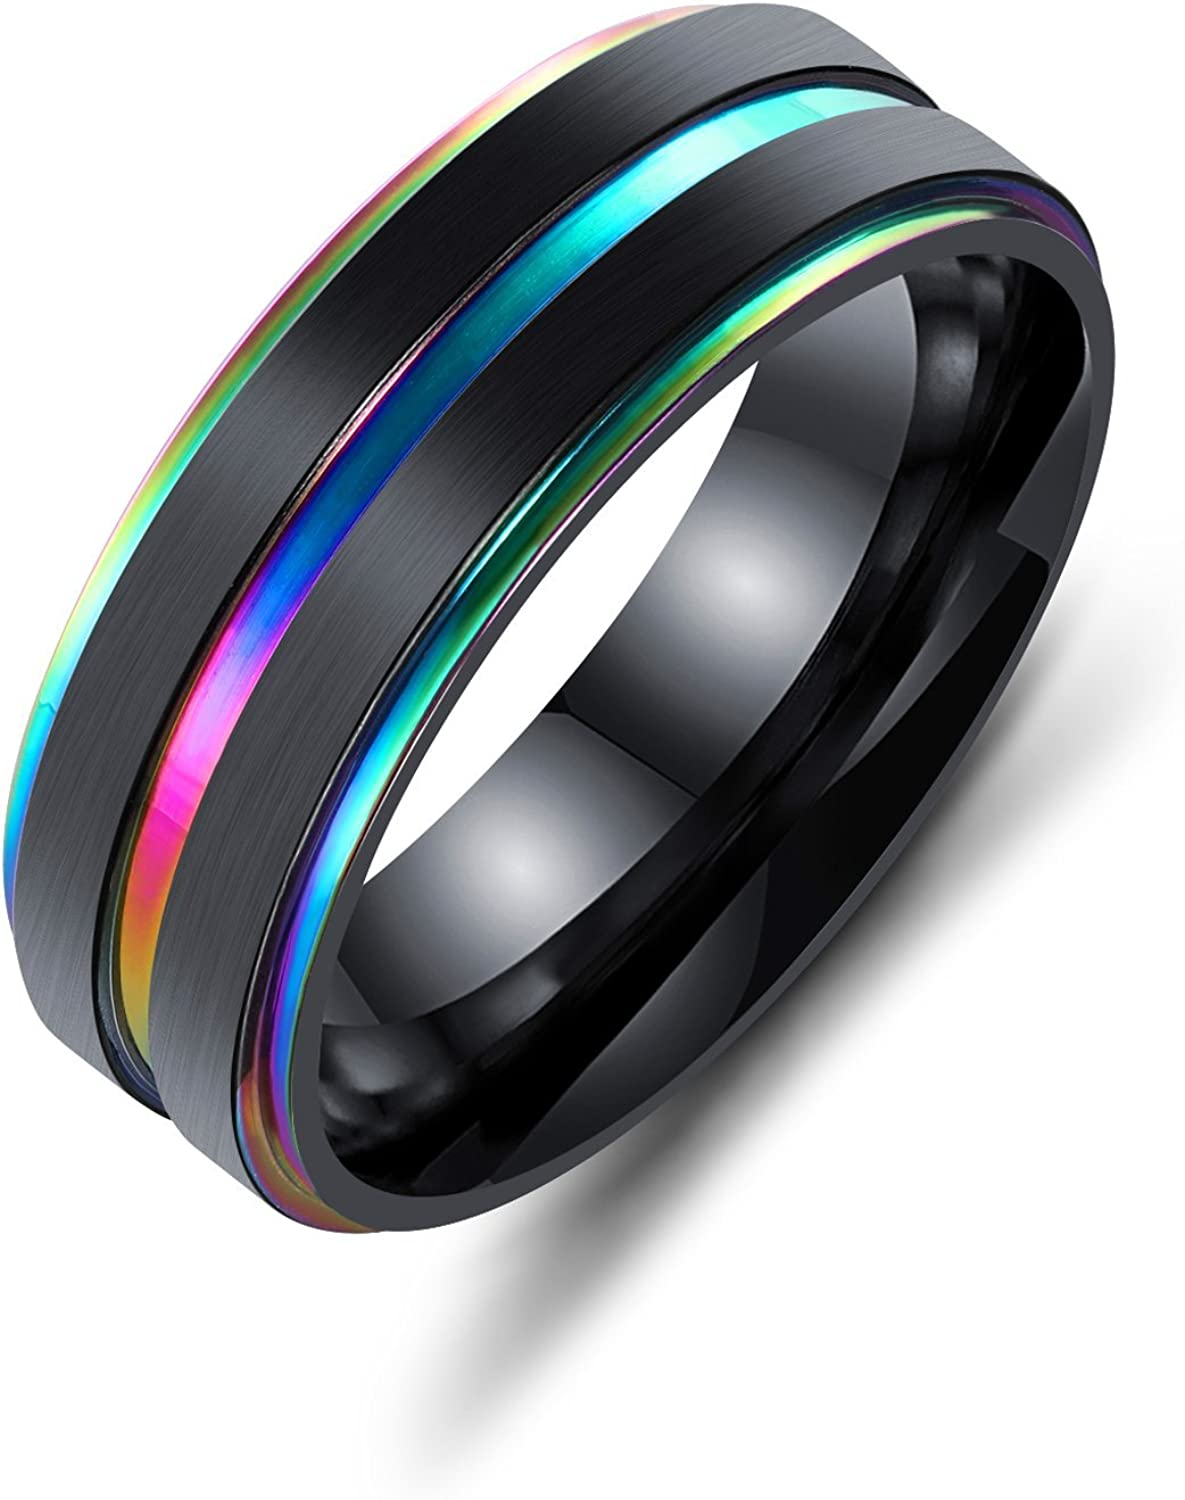 INSEA Classic Titanium Steel Wedding Engagement Band for Men Brushed Comfort Fit Size 6-11